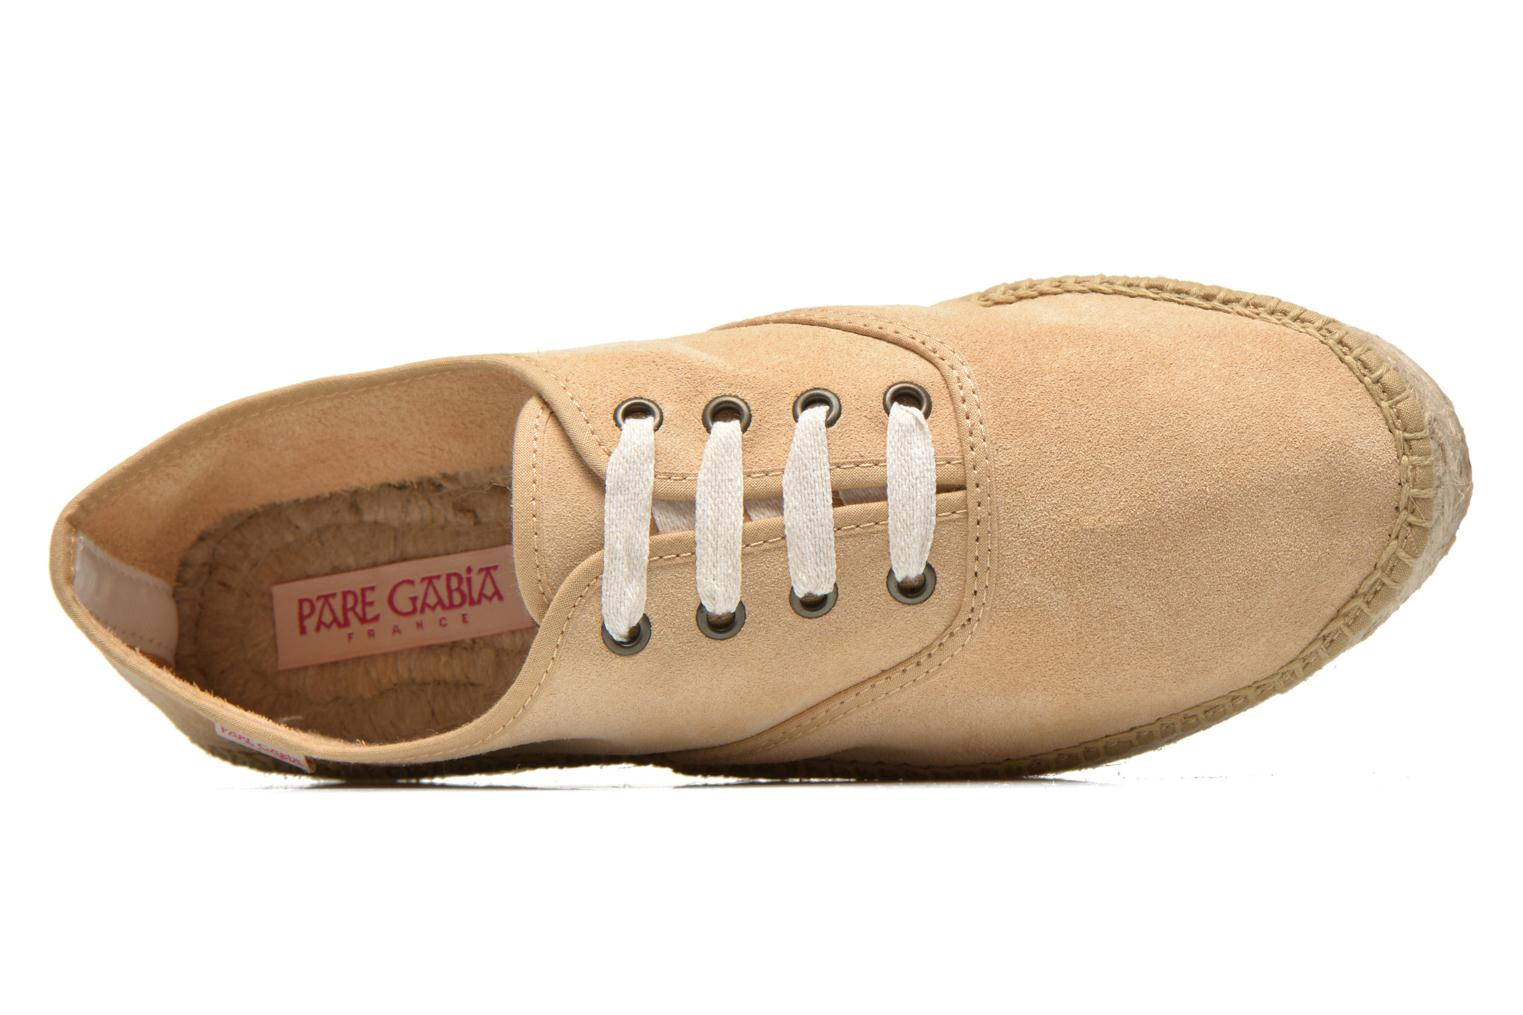 Lace-up shoes Pare Gabia Ictum croûte Beige view from the left